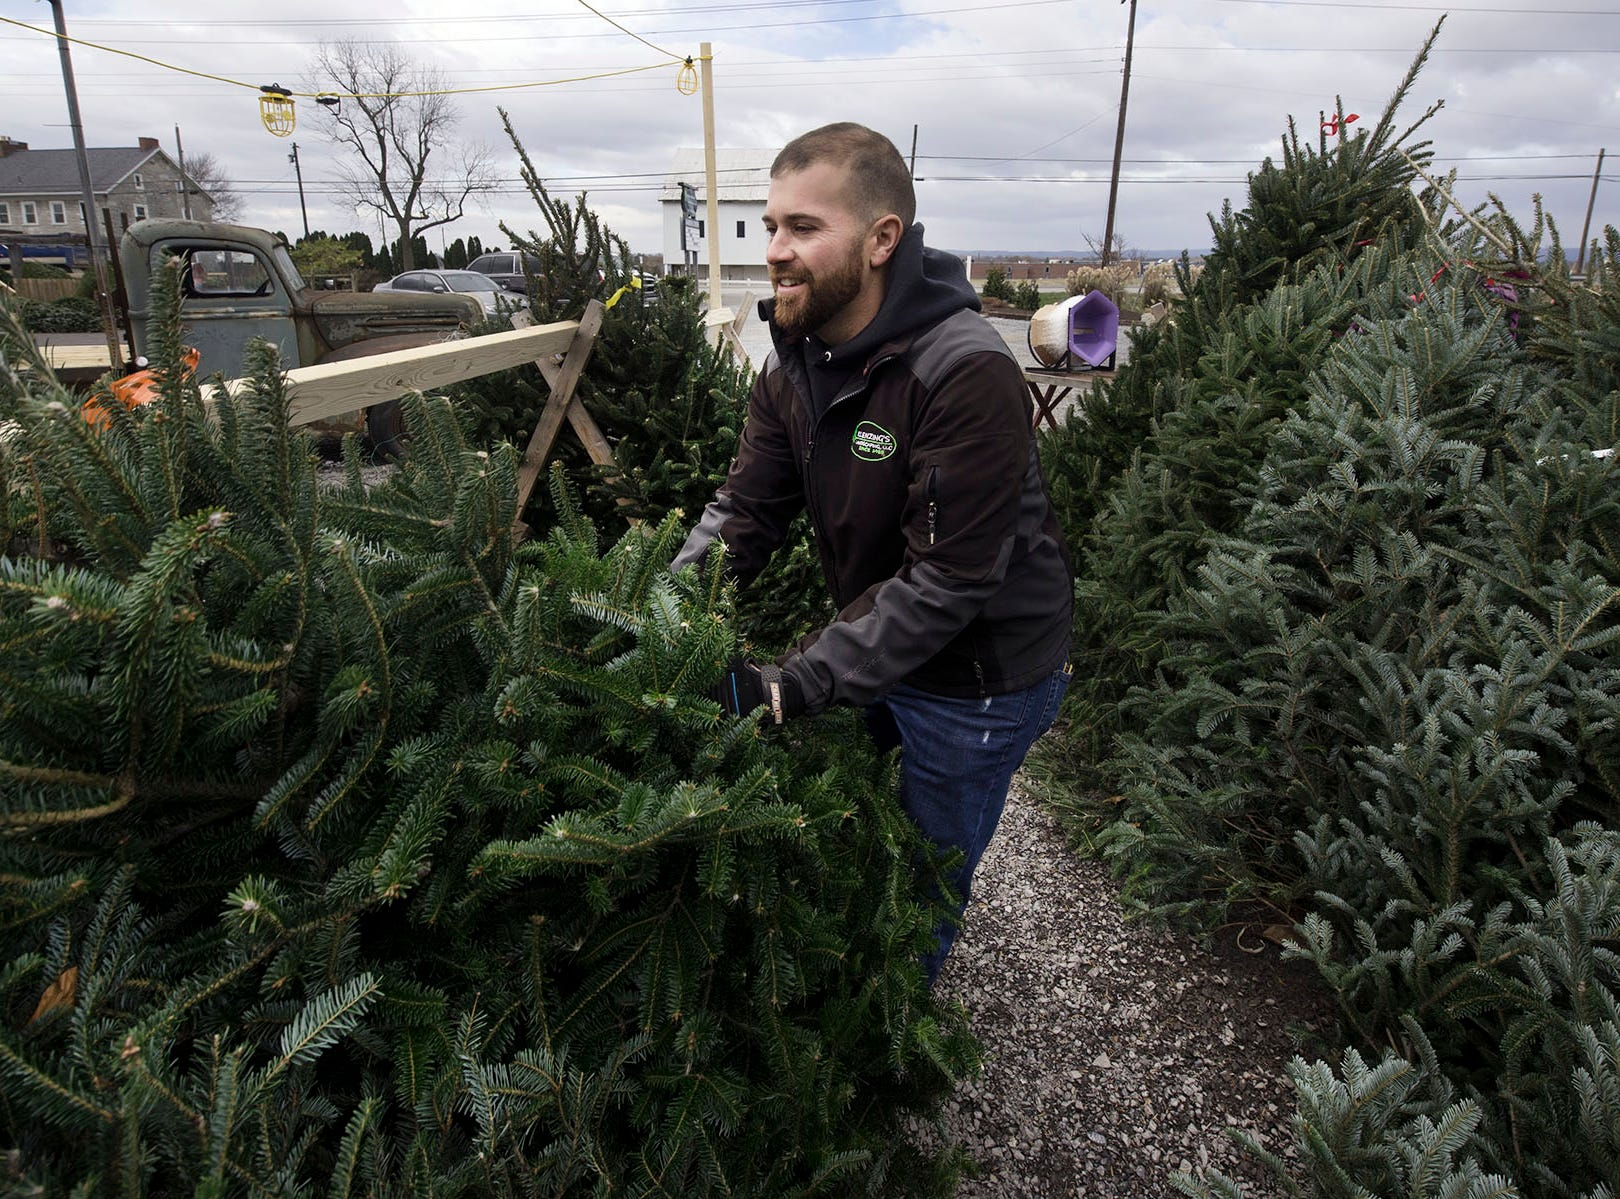 Jordan Klenzing, co-owner Klenzing Landscaping, LLC, 2922 Molly Pitcher Highway, Chambersburg, picks up Christmas trees that were knocked over during windy conditions on Wednesday morning Nov. 28, 2018. Klenzing's carries a variety of trees during the holiday season.